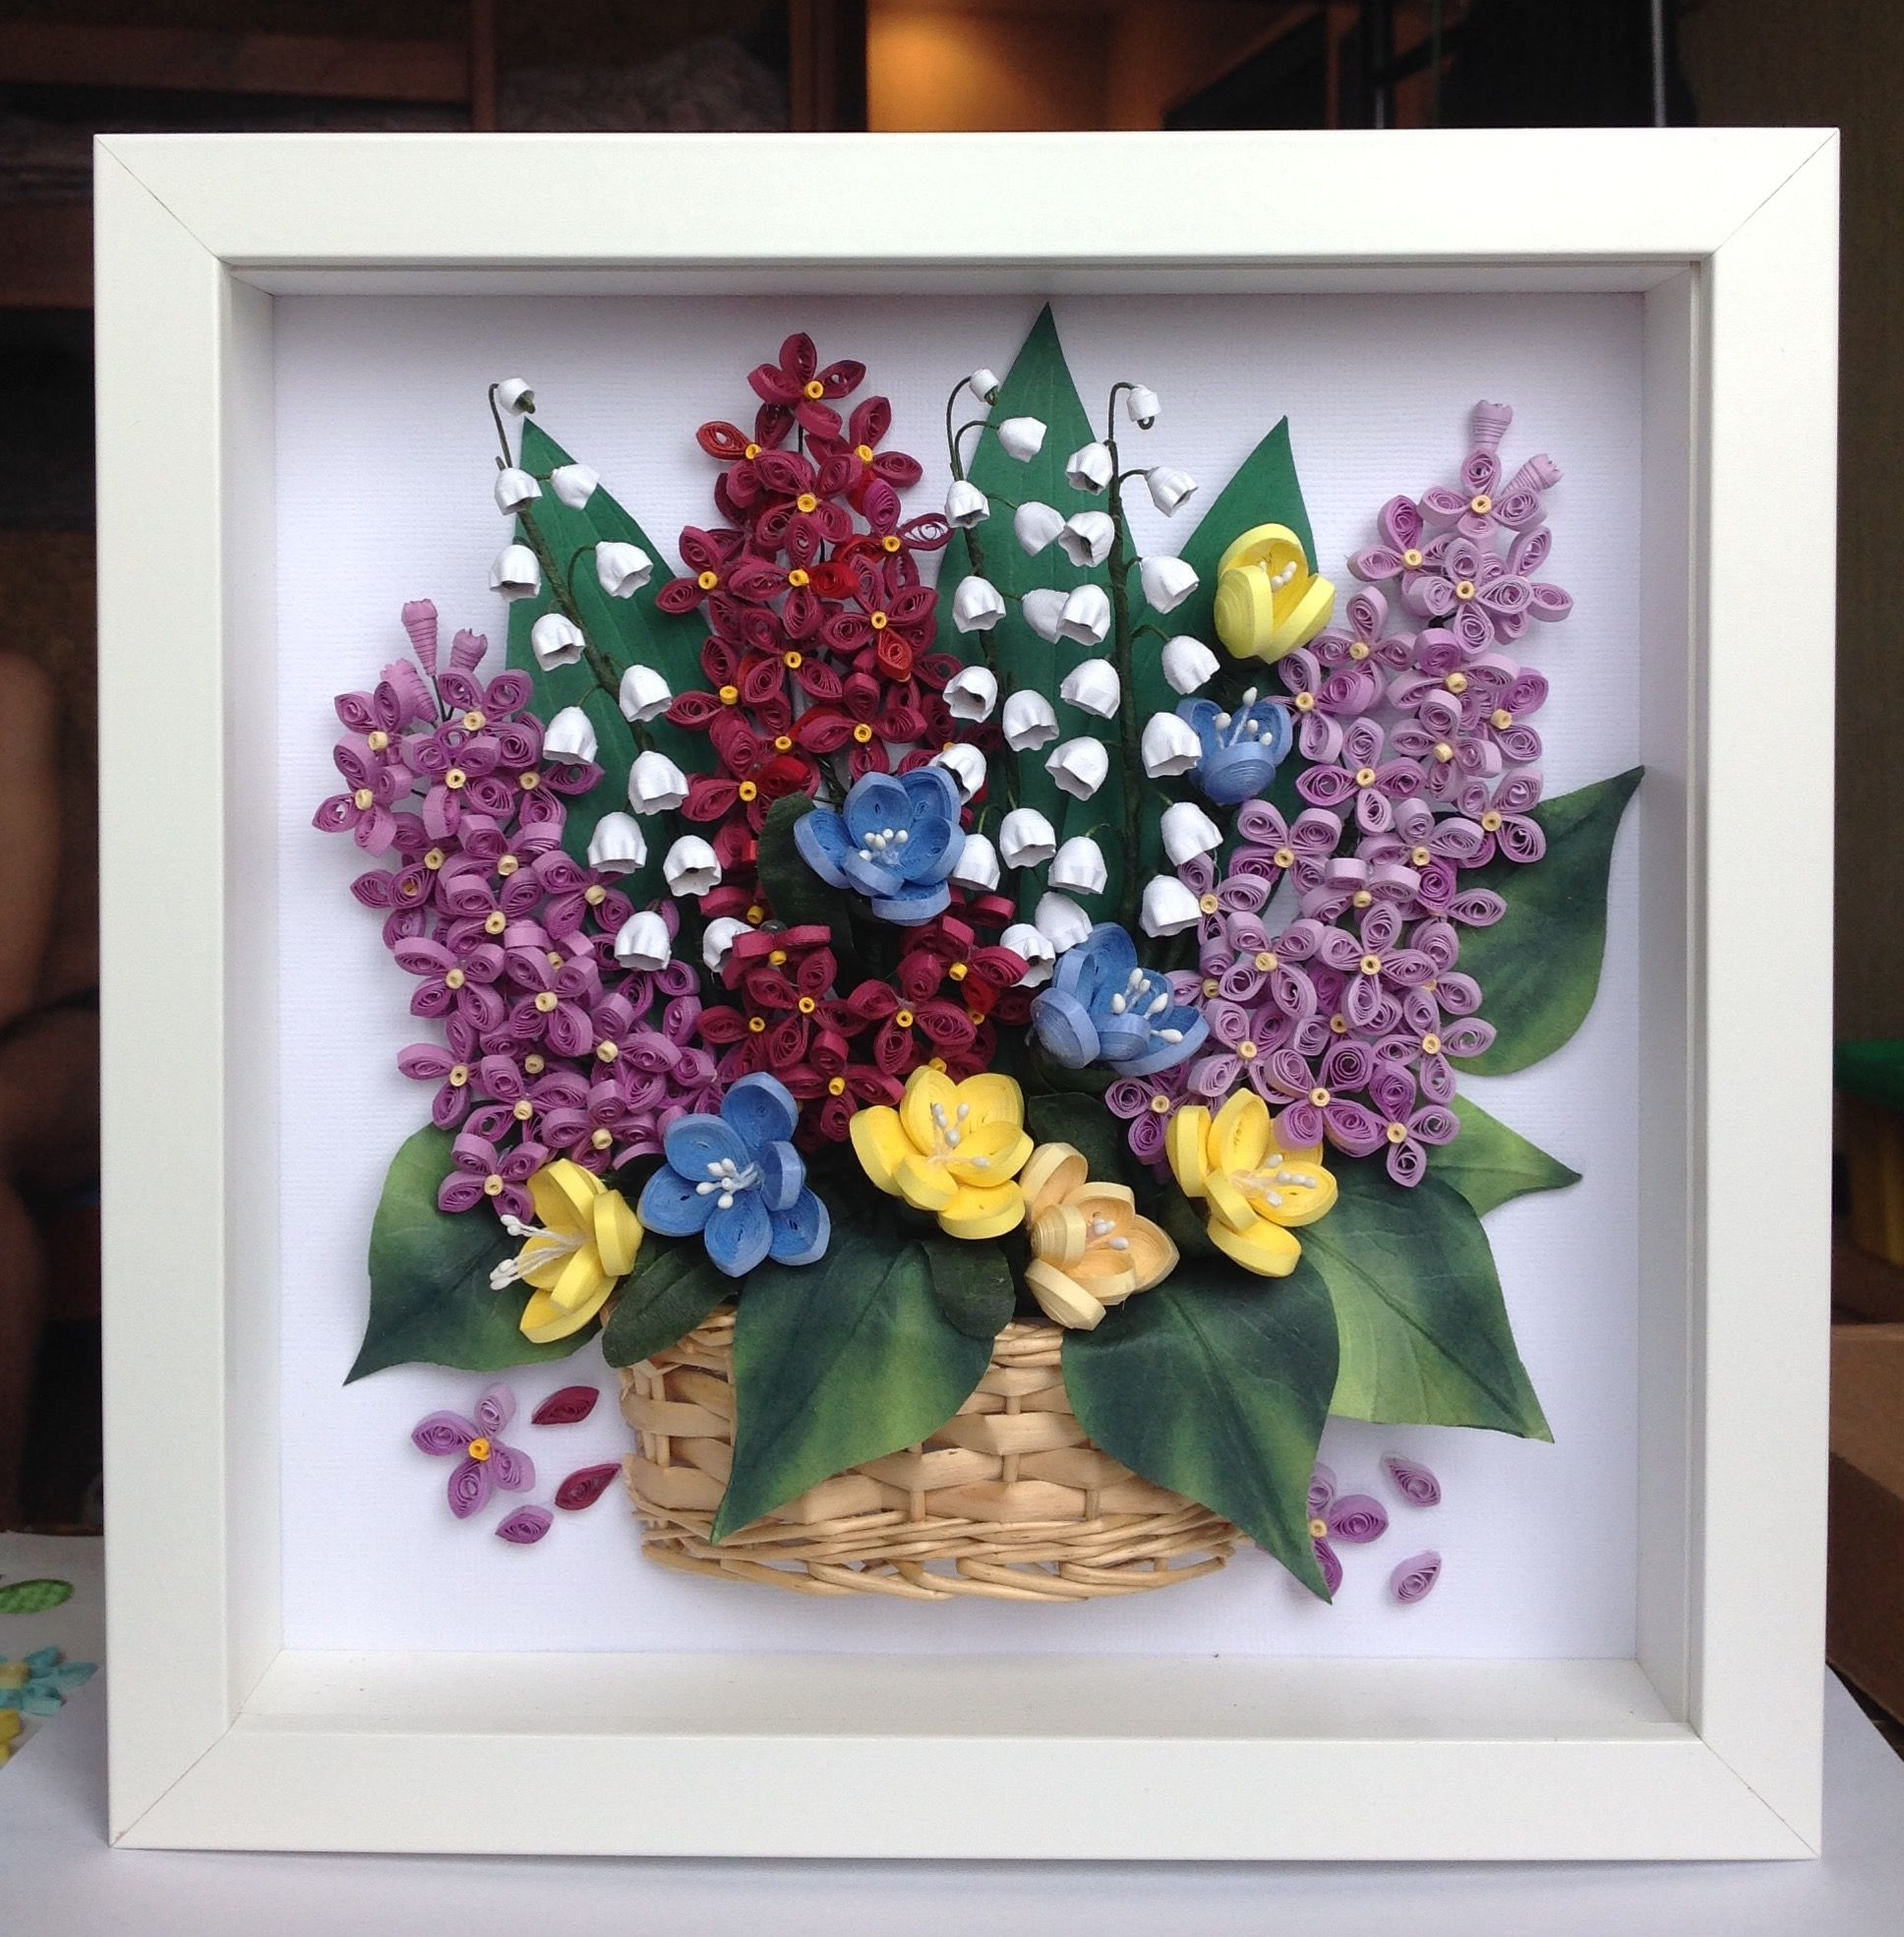 Pin by Reni Norowisnu on shadow box  Pinterest  Quilling Paper